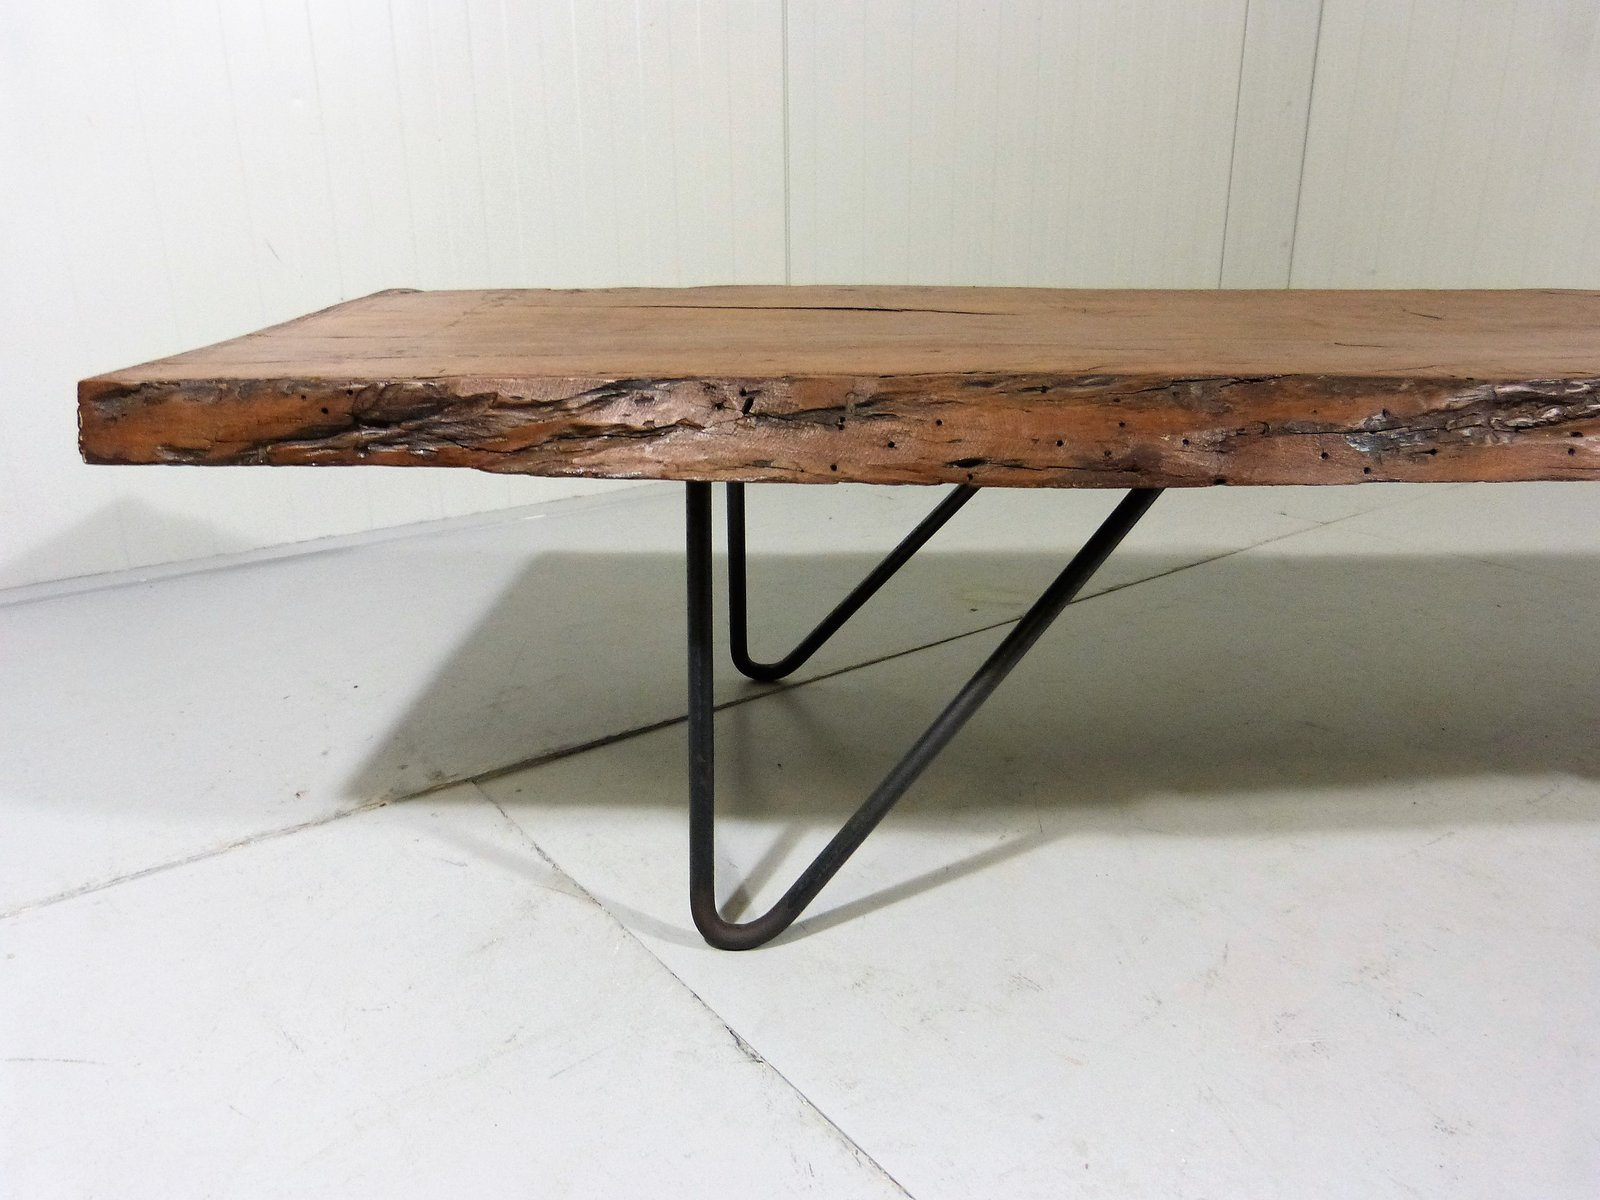 grande table basse tronc d arbre recycl vintage en vente sur pamono. Black Bedroom Furniture Sets. Home Design Ideas